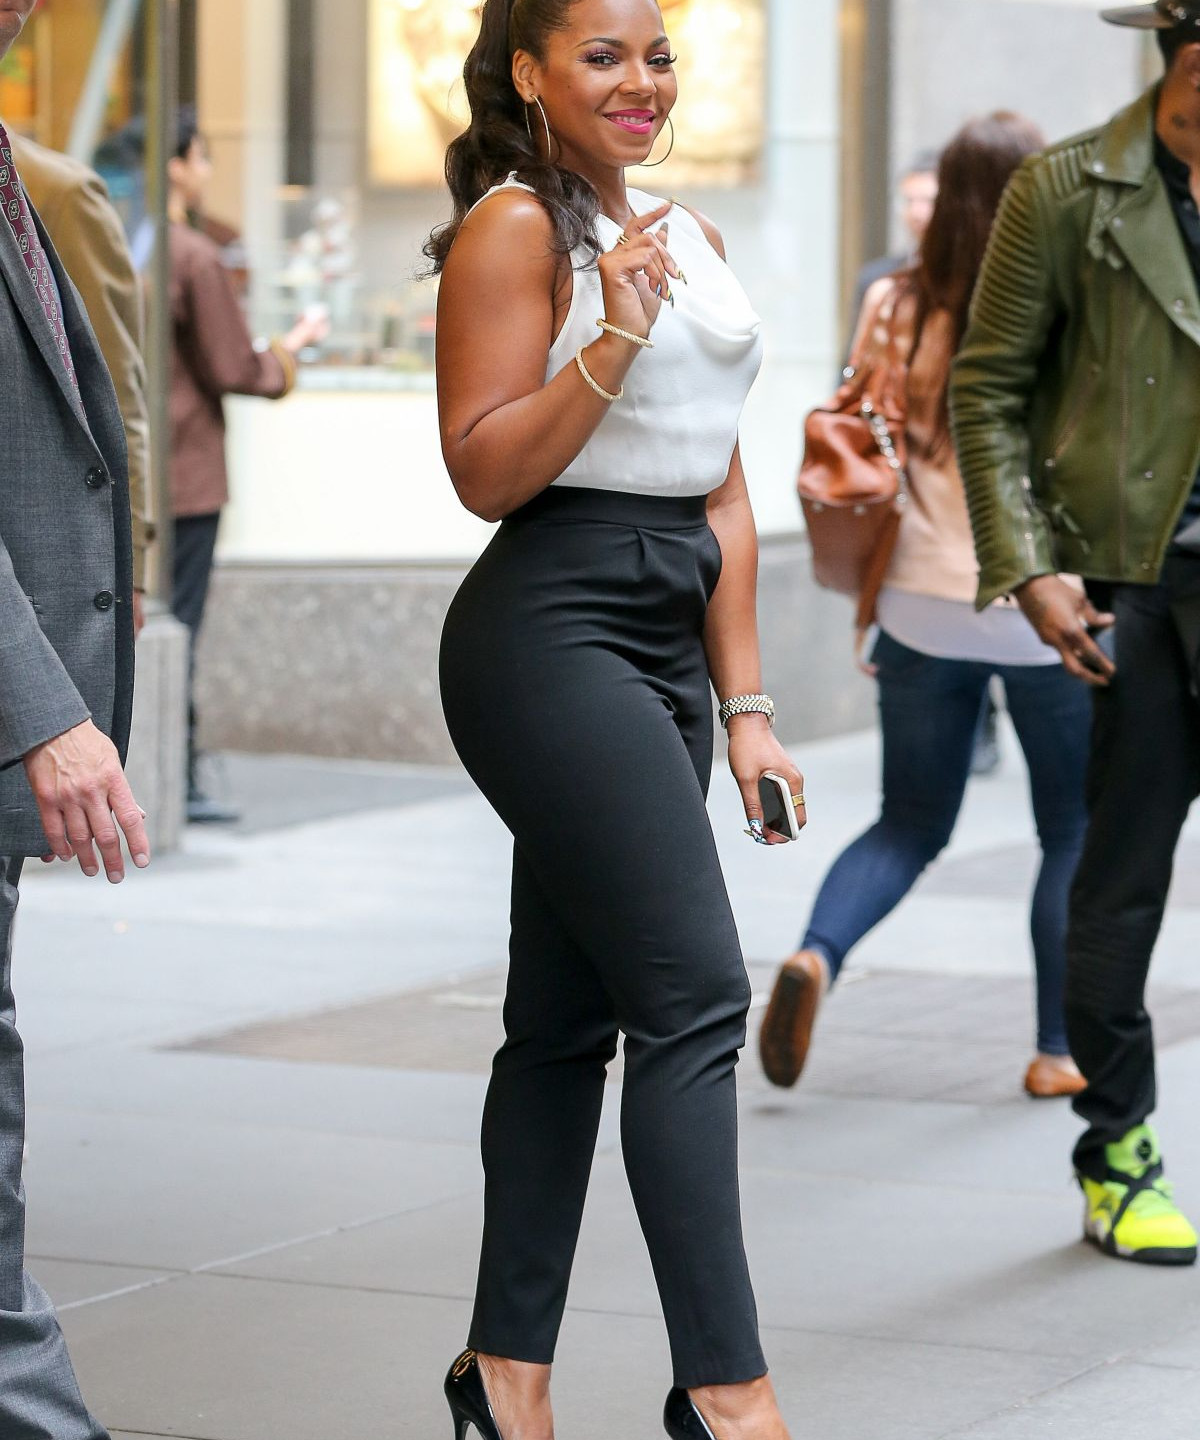 ashanti-out-and-about-in-new-york-04-17-2015_3